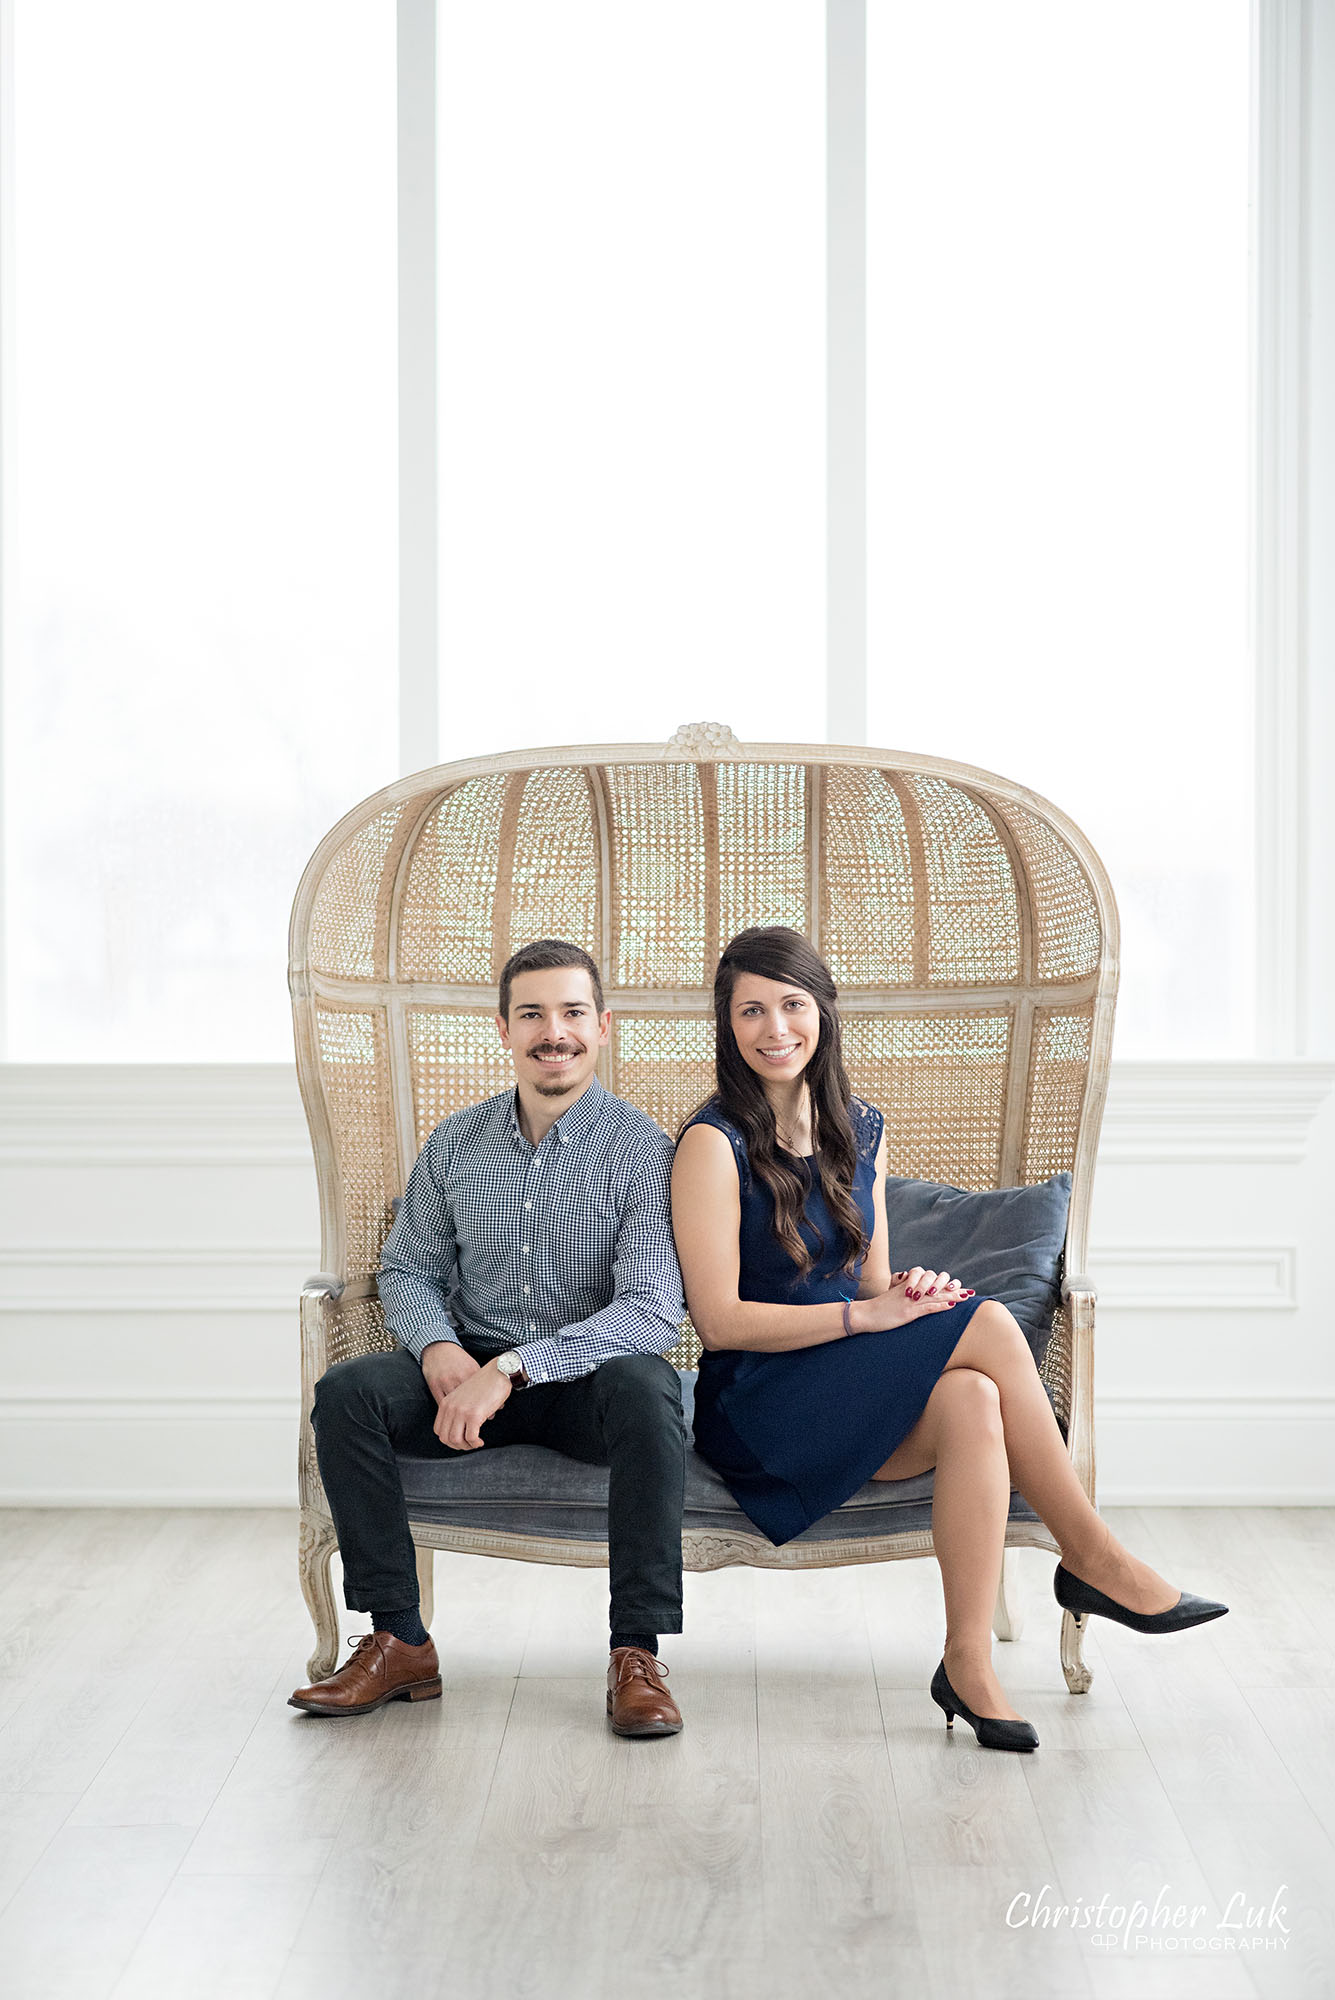 Christopher Luk Toronto Wedding Photographer Mint Room Studios Conservatory Engagement Session Winter Indoor Natural Light Candid Photojournalistic Bride Groom Wicker French Rustic Vintage Dome Loveseat Chair Smile